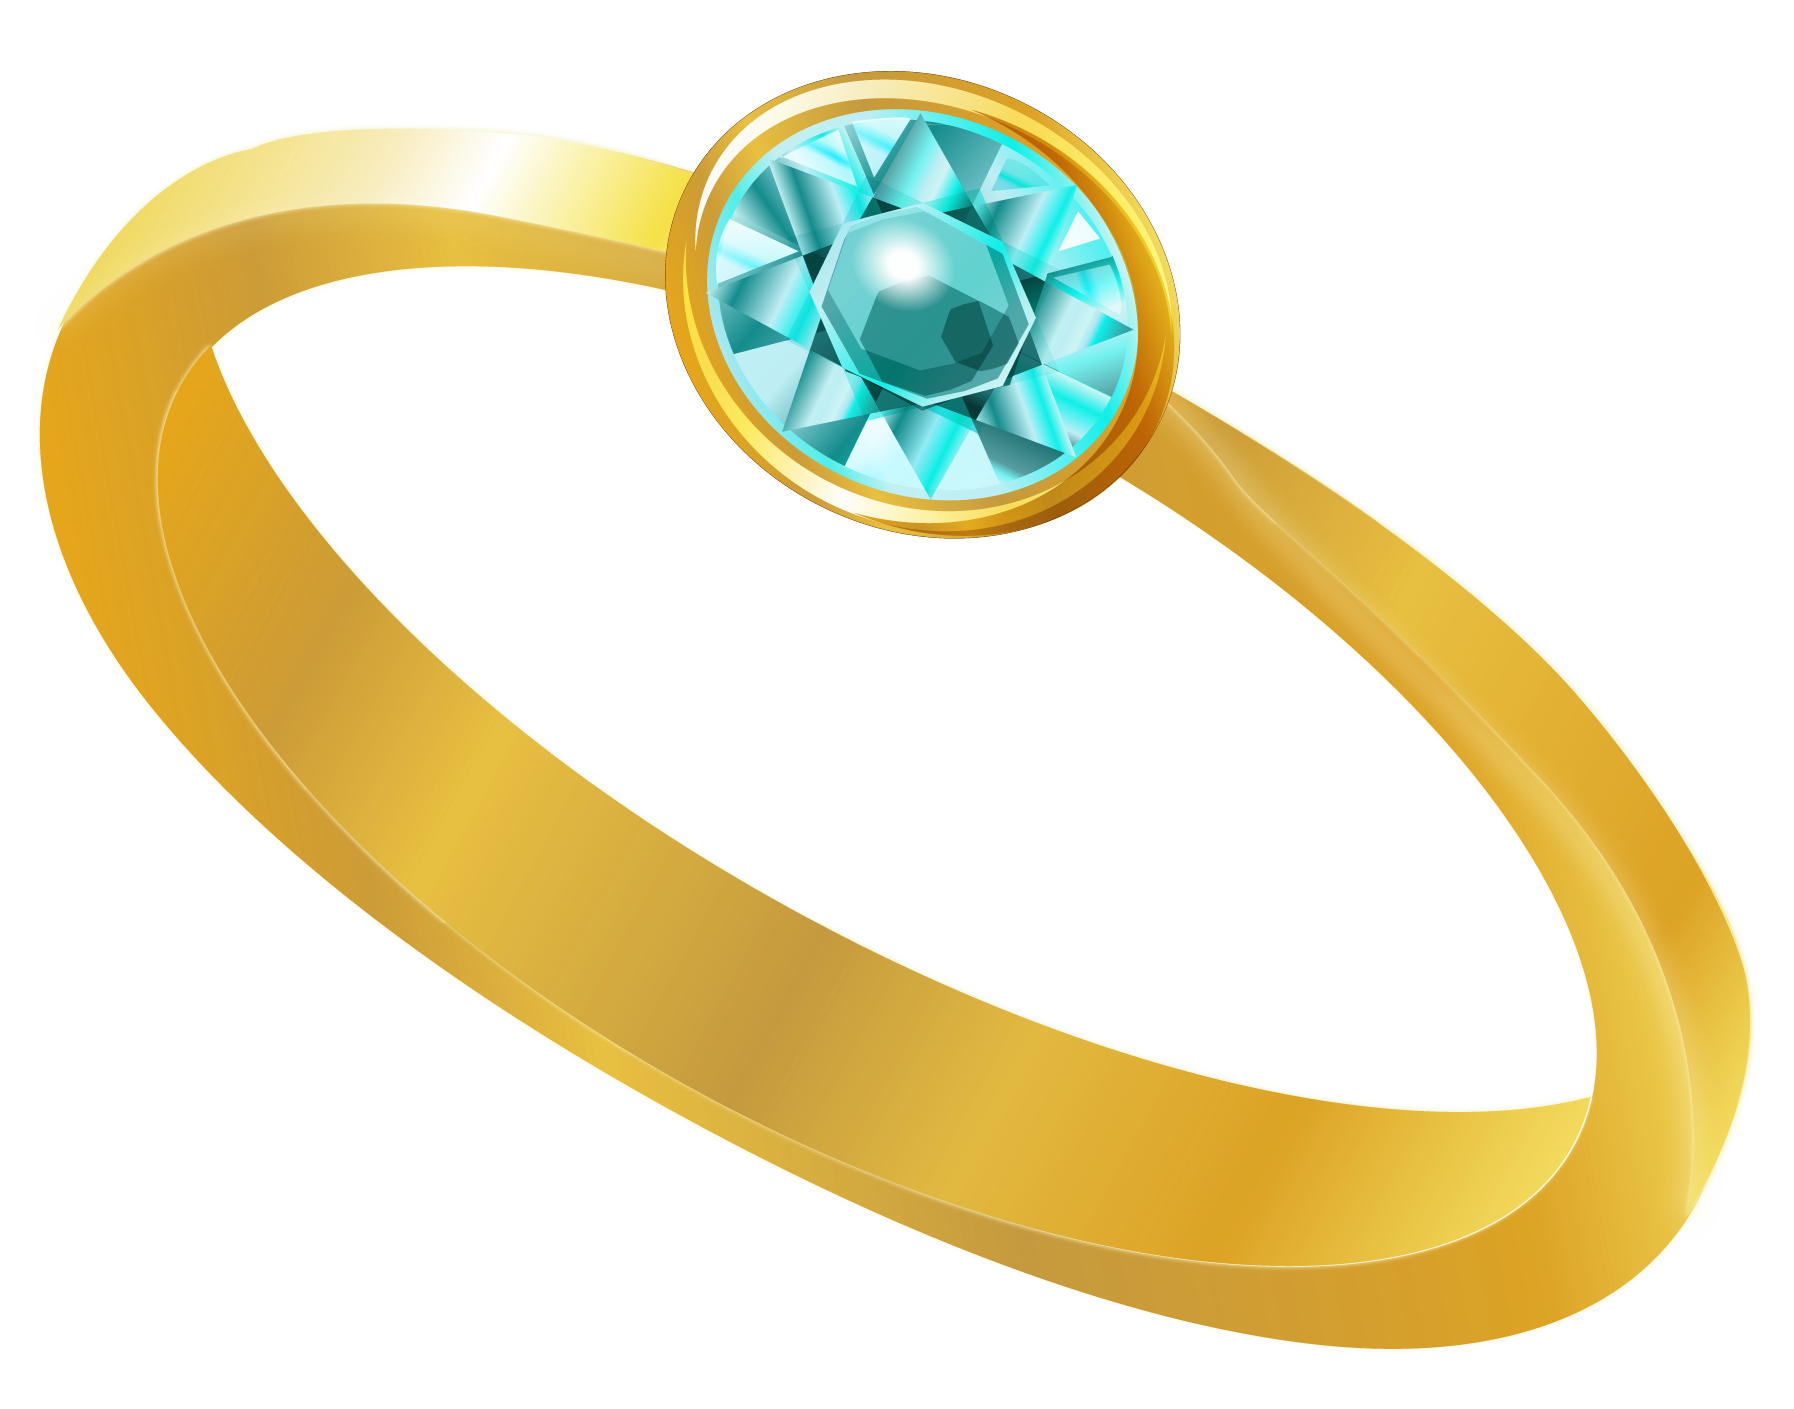 Golden ring with blue. Clipart diamond bunch